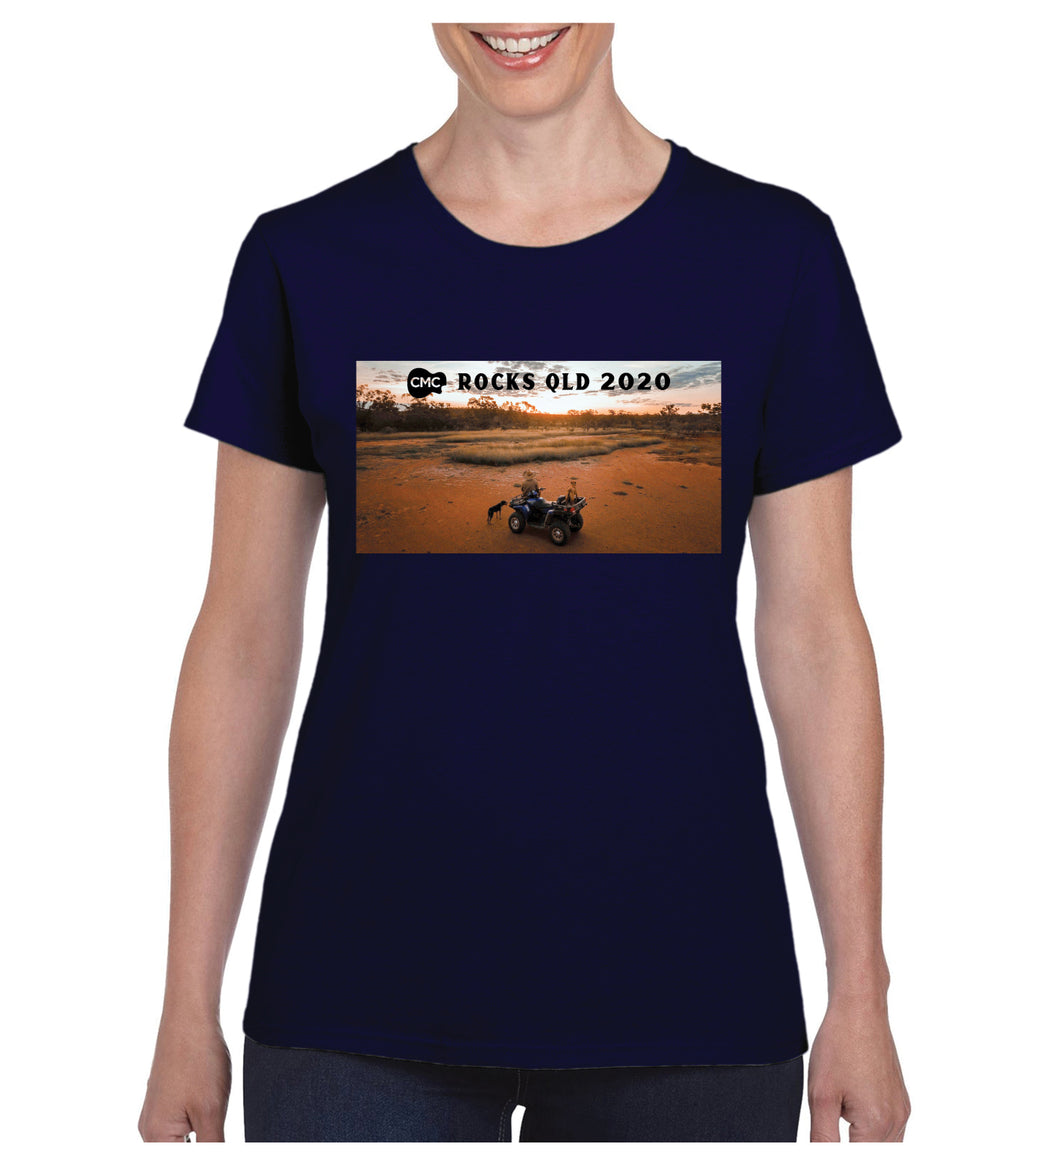 Women's Sunset Photo Shirt